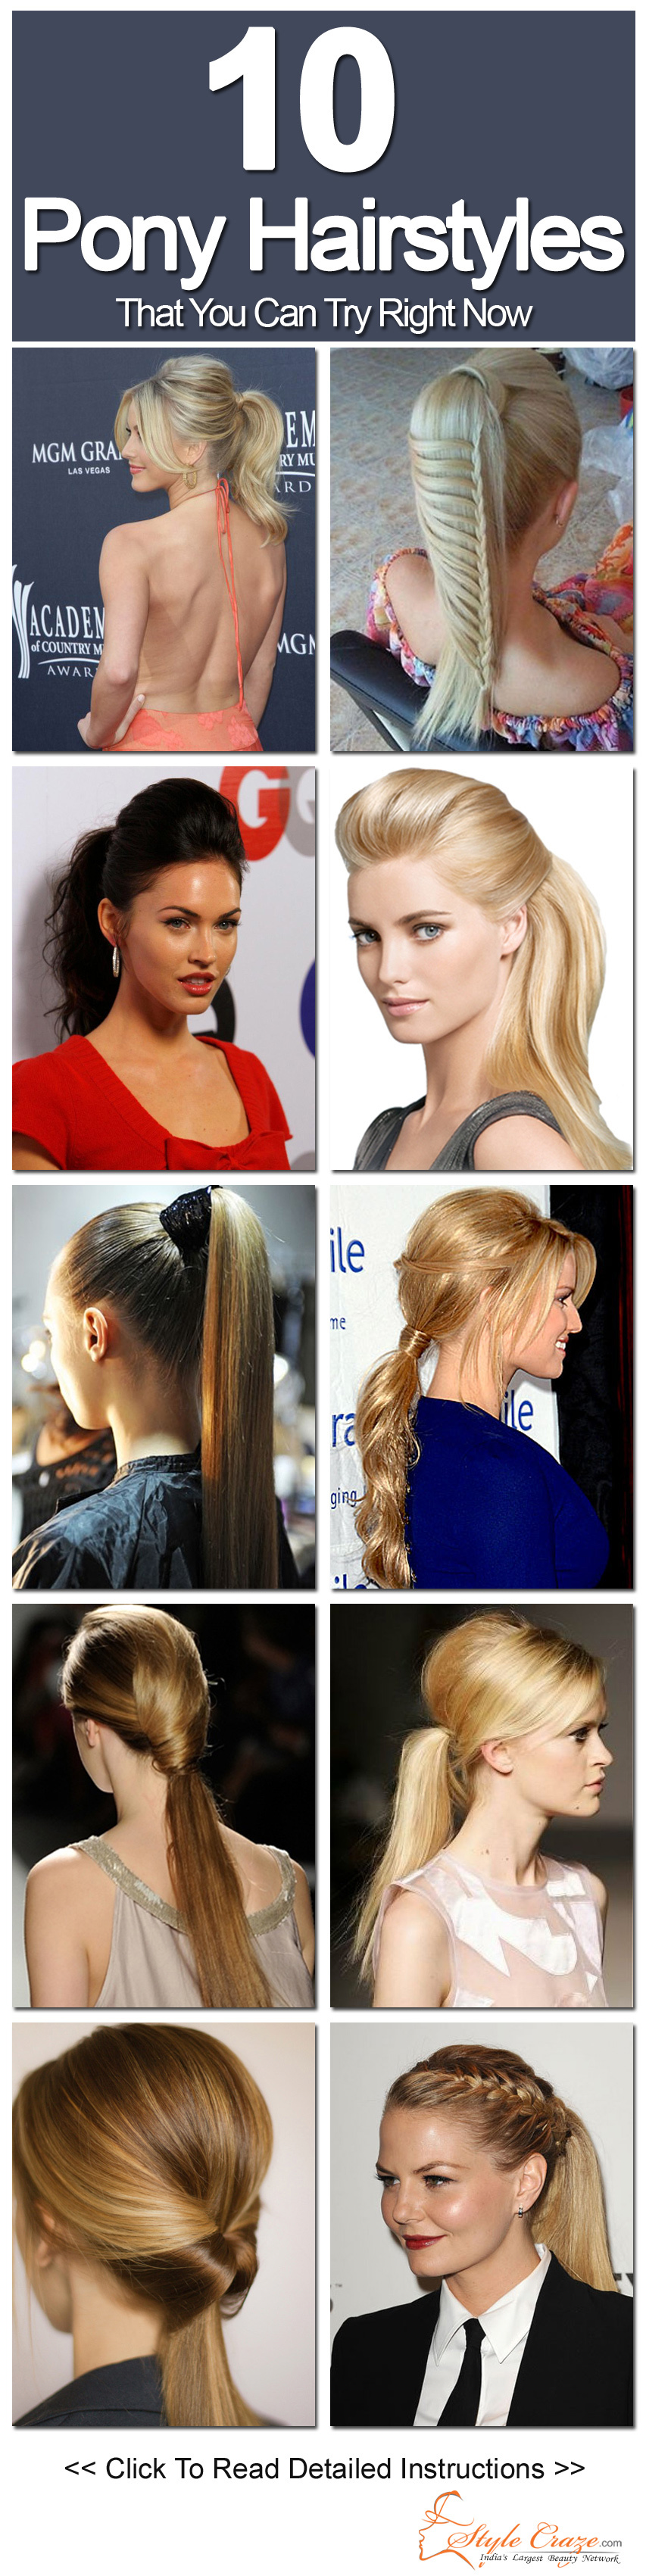 Awe Inspiring 10 Pony Hairstyles That You Can Try Short Hairstyles For Black Women Fulllsitofus